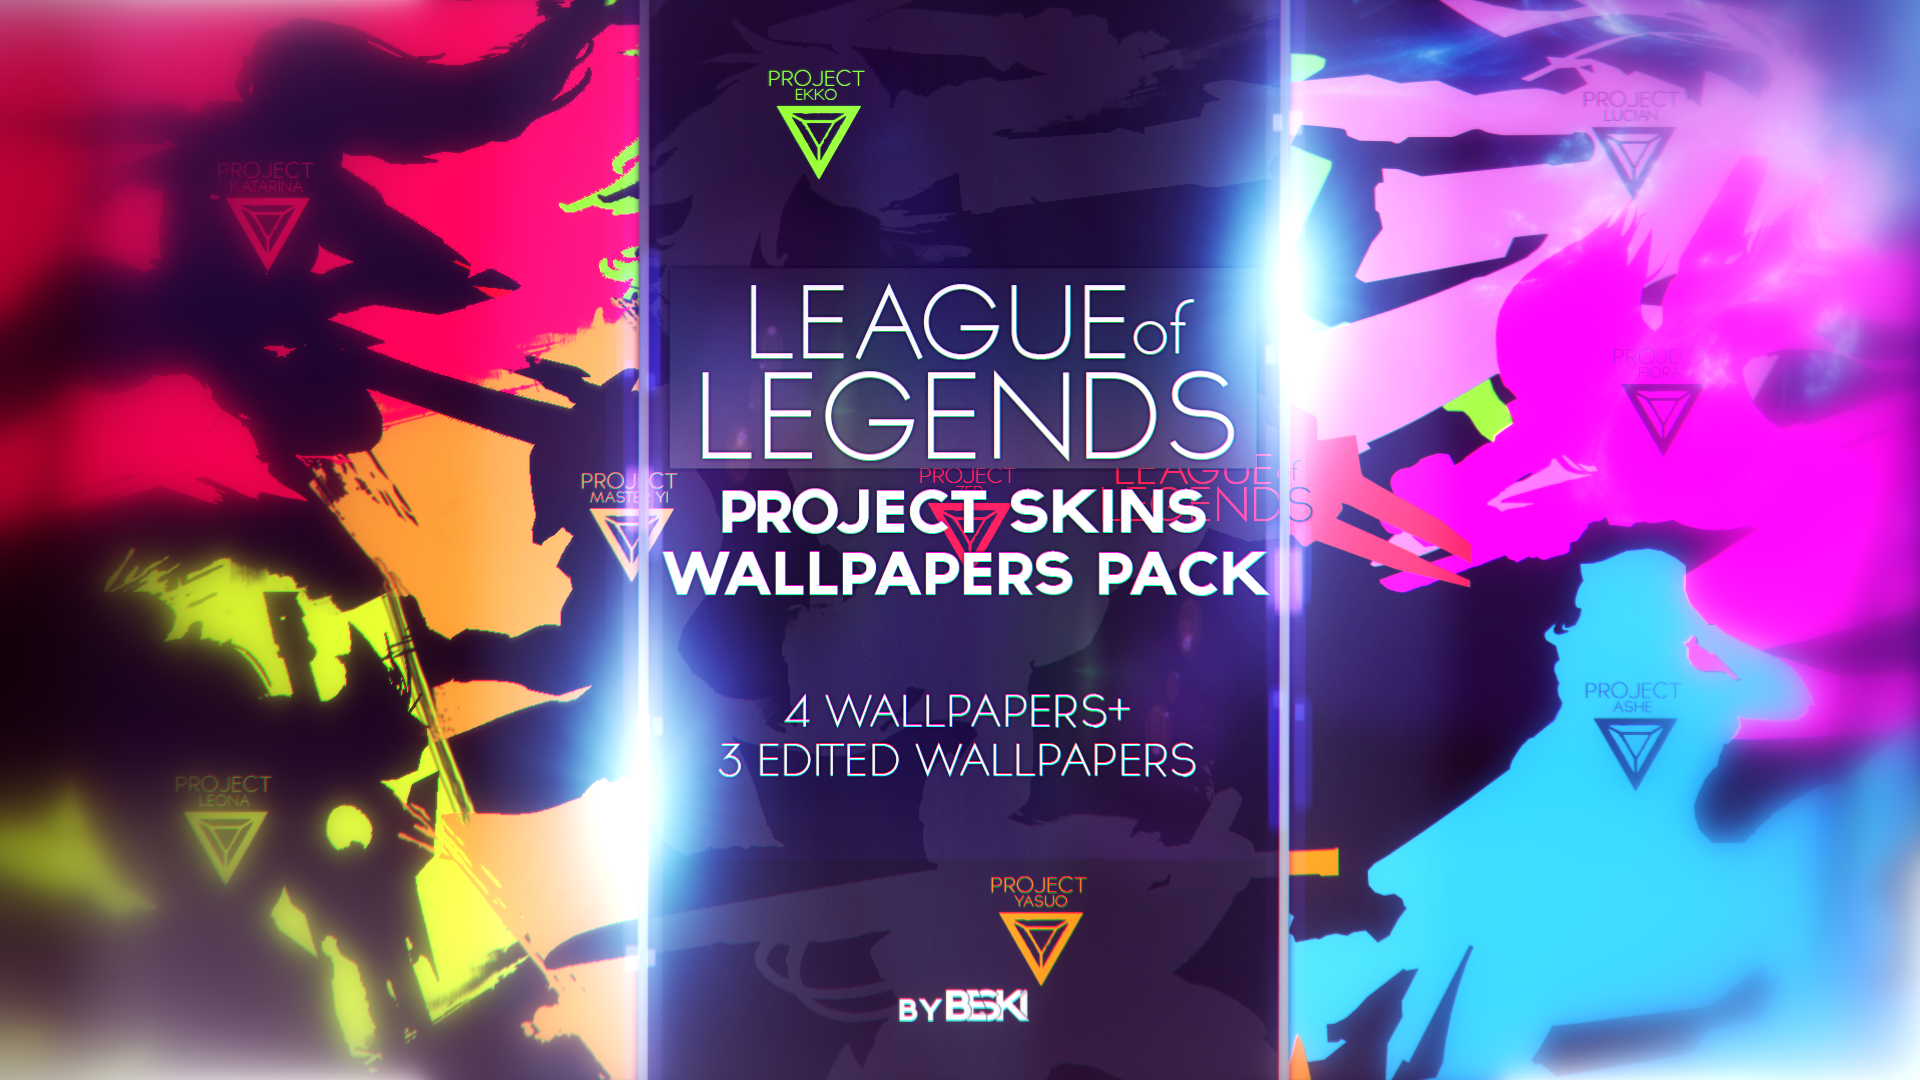 League of legends wallpaper pack -  League Of Legends Project Skins Wallpapers Pack By By Beszky